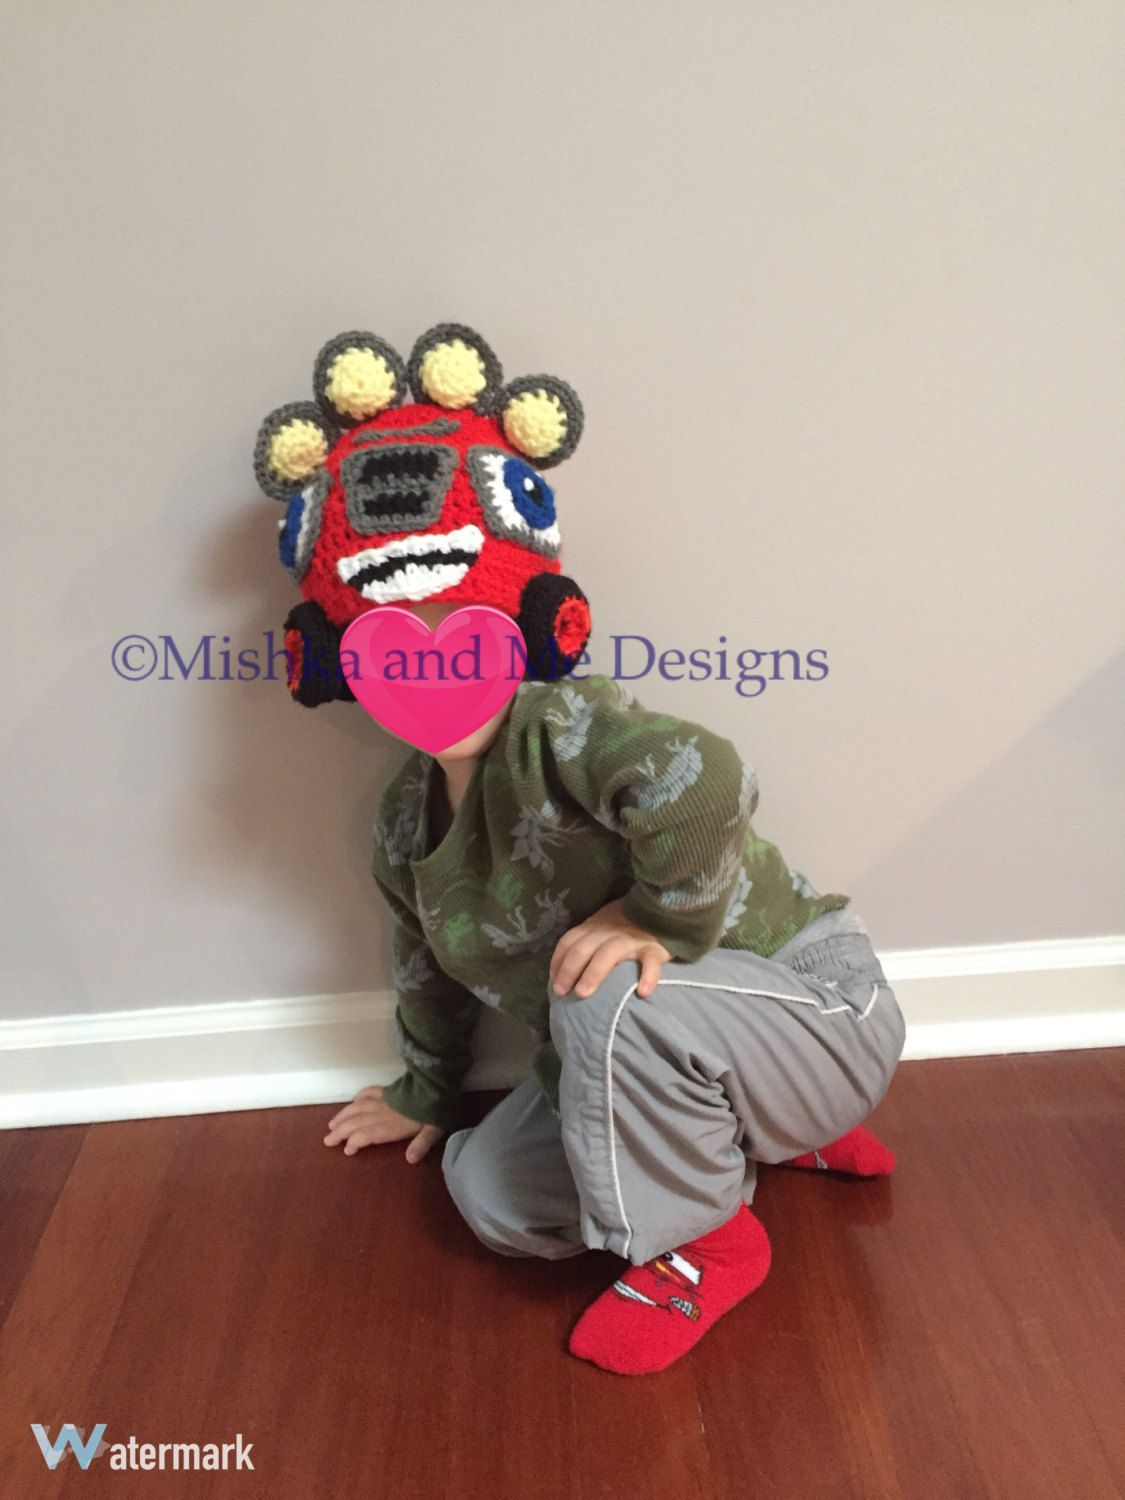 Blaze and the monster machines character inspired handmade crocheted ...